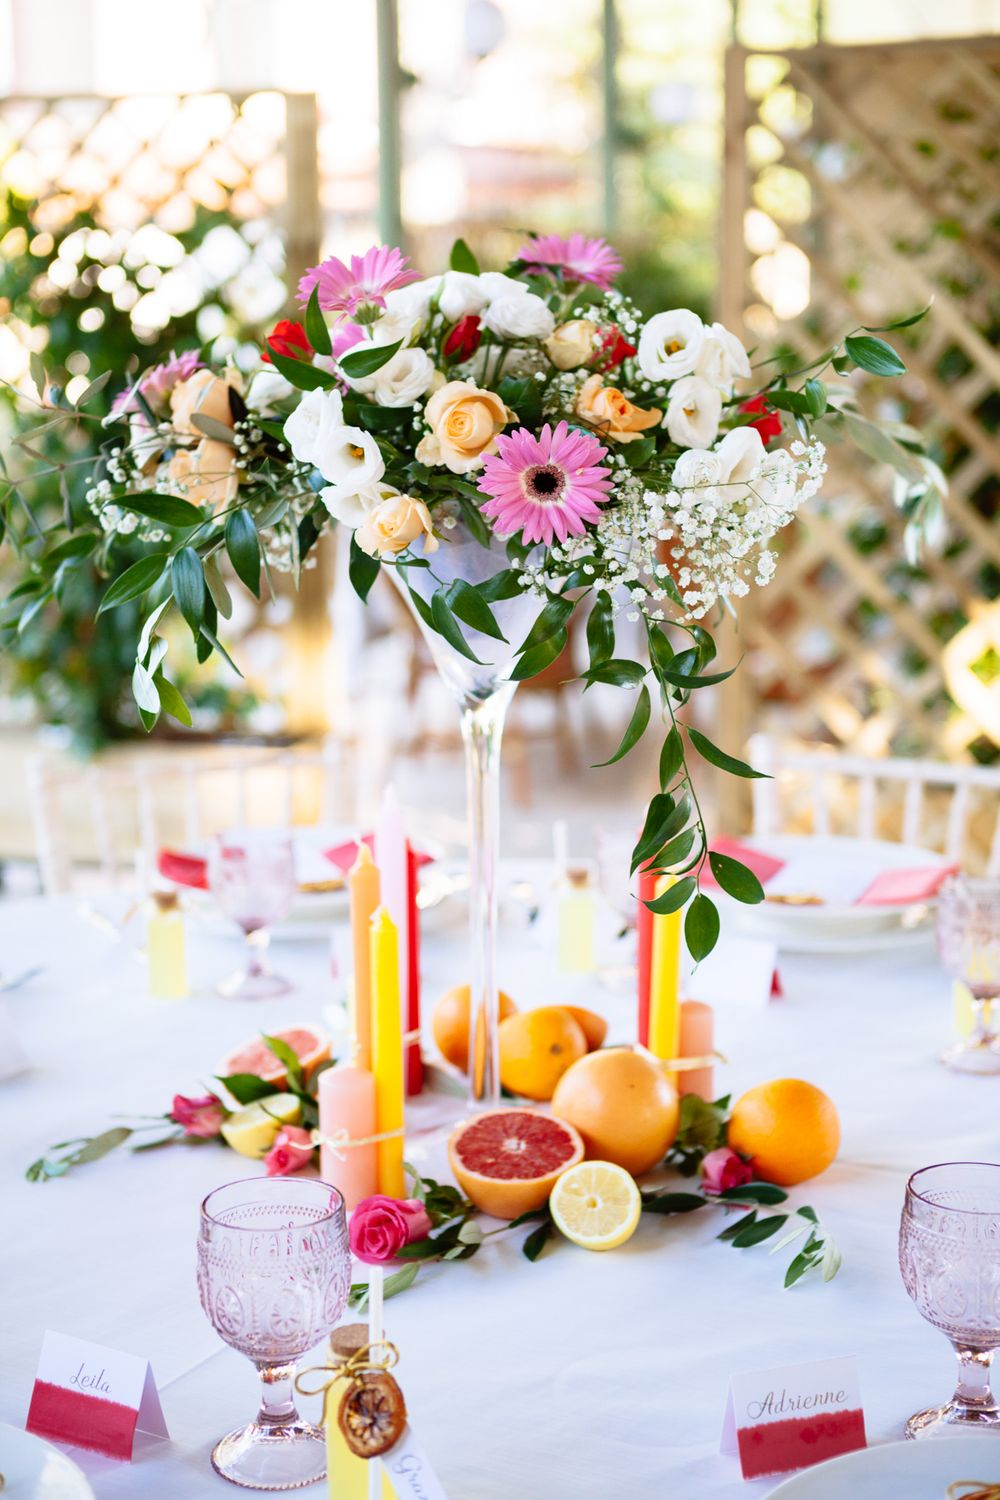 bright and bold Italian citrus wedding table setting inspiration for a wedding in Tuscany